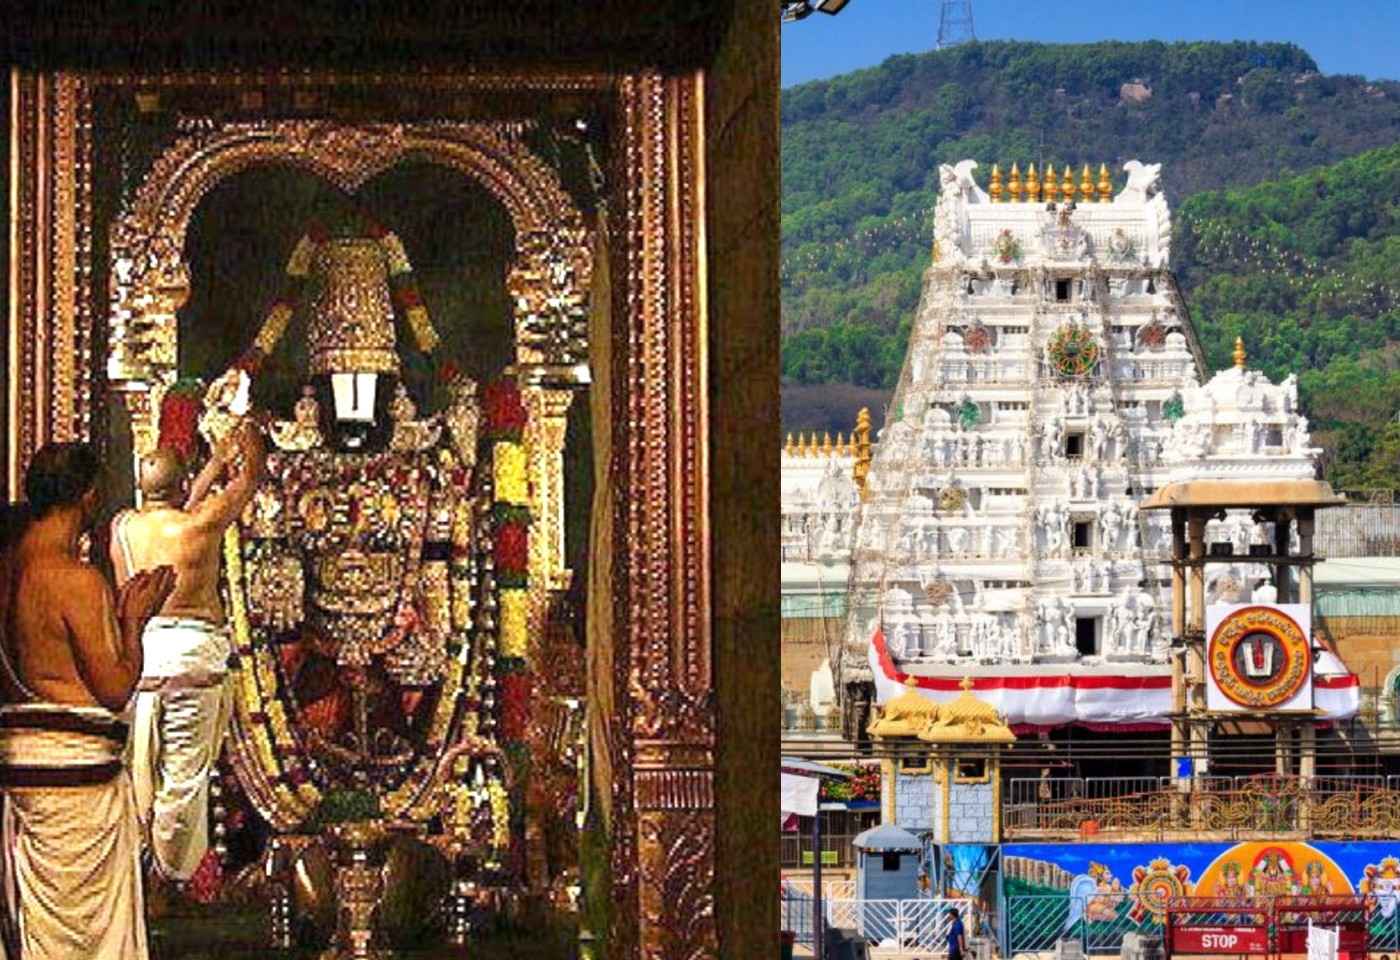 TTD Sansthanam will build Balaji Temple in Jammu, land leased for 40 years